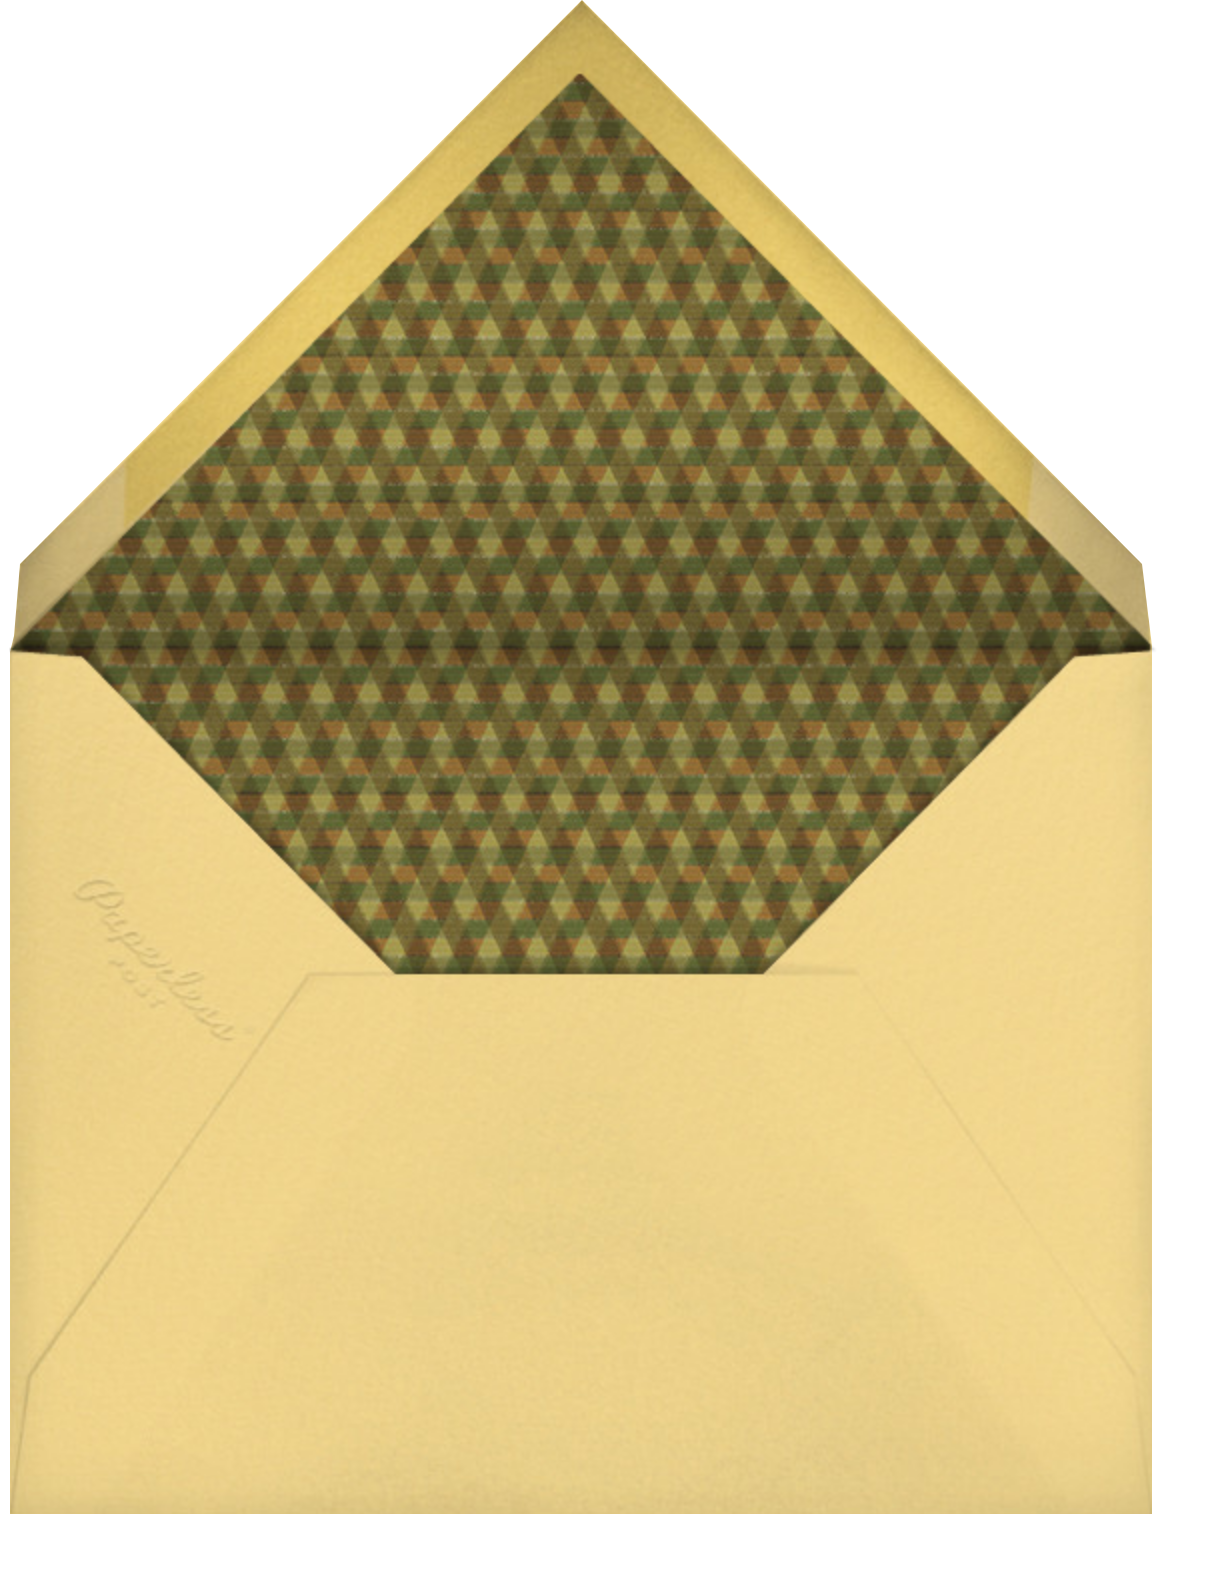 Horn of Plenty (Invitation) - Paperless Post - Autumn entertaining - envelope back